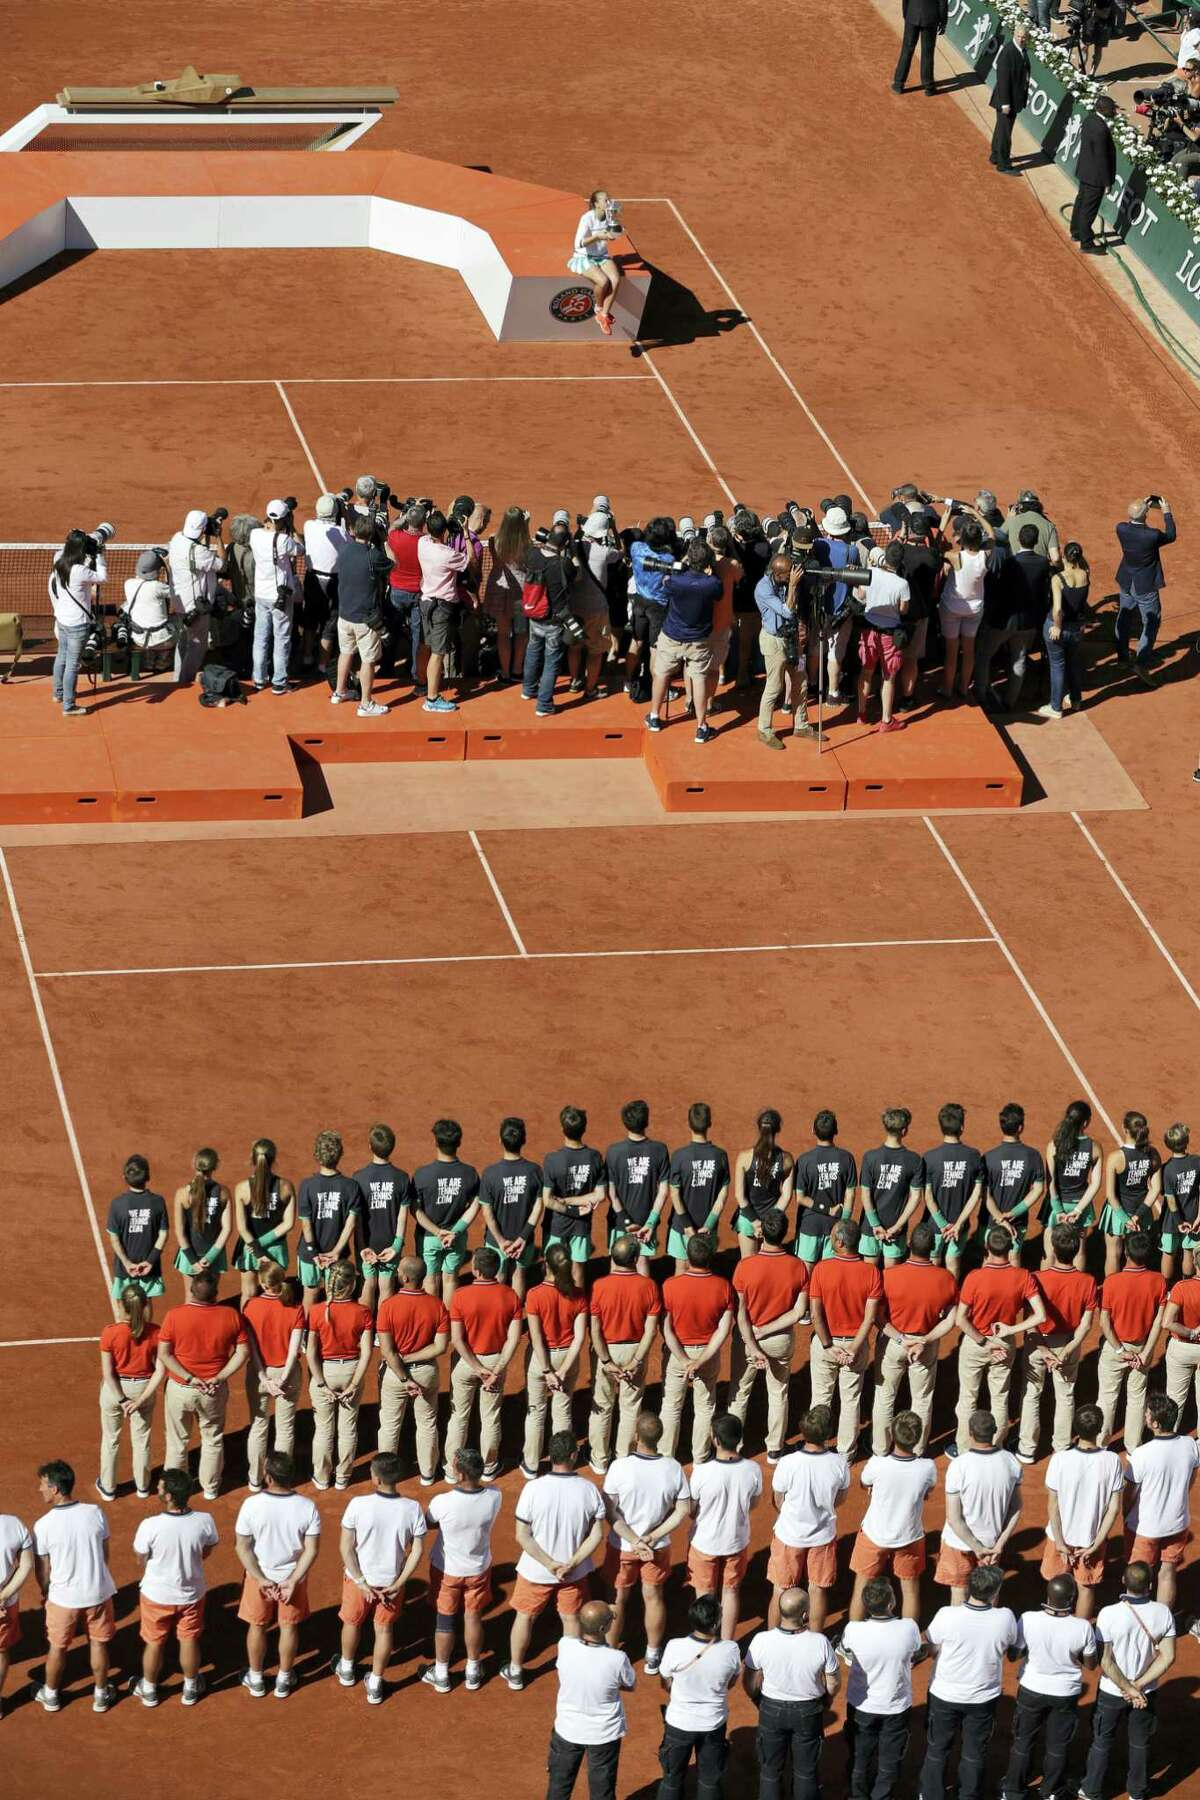 Latvia's Jelena Ostapenko, top, kisses the trophy during the award ceremony after winning the women's final match of the French Open tennis tournament against Romania's Simona Halep in three sets 4-6, 6-4, 6-3, at the Roland Garros stadium, in Paris, France, Saturday, June 10, 2017.